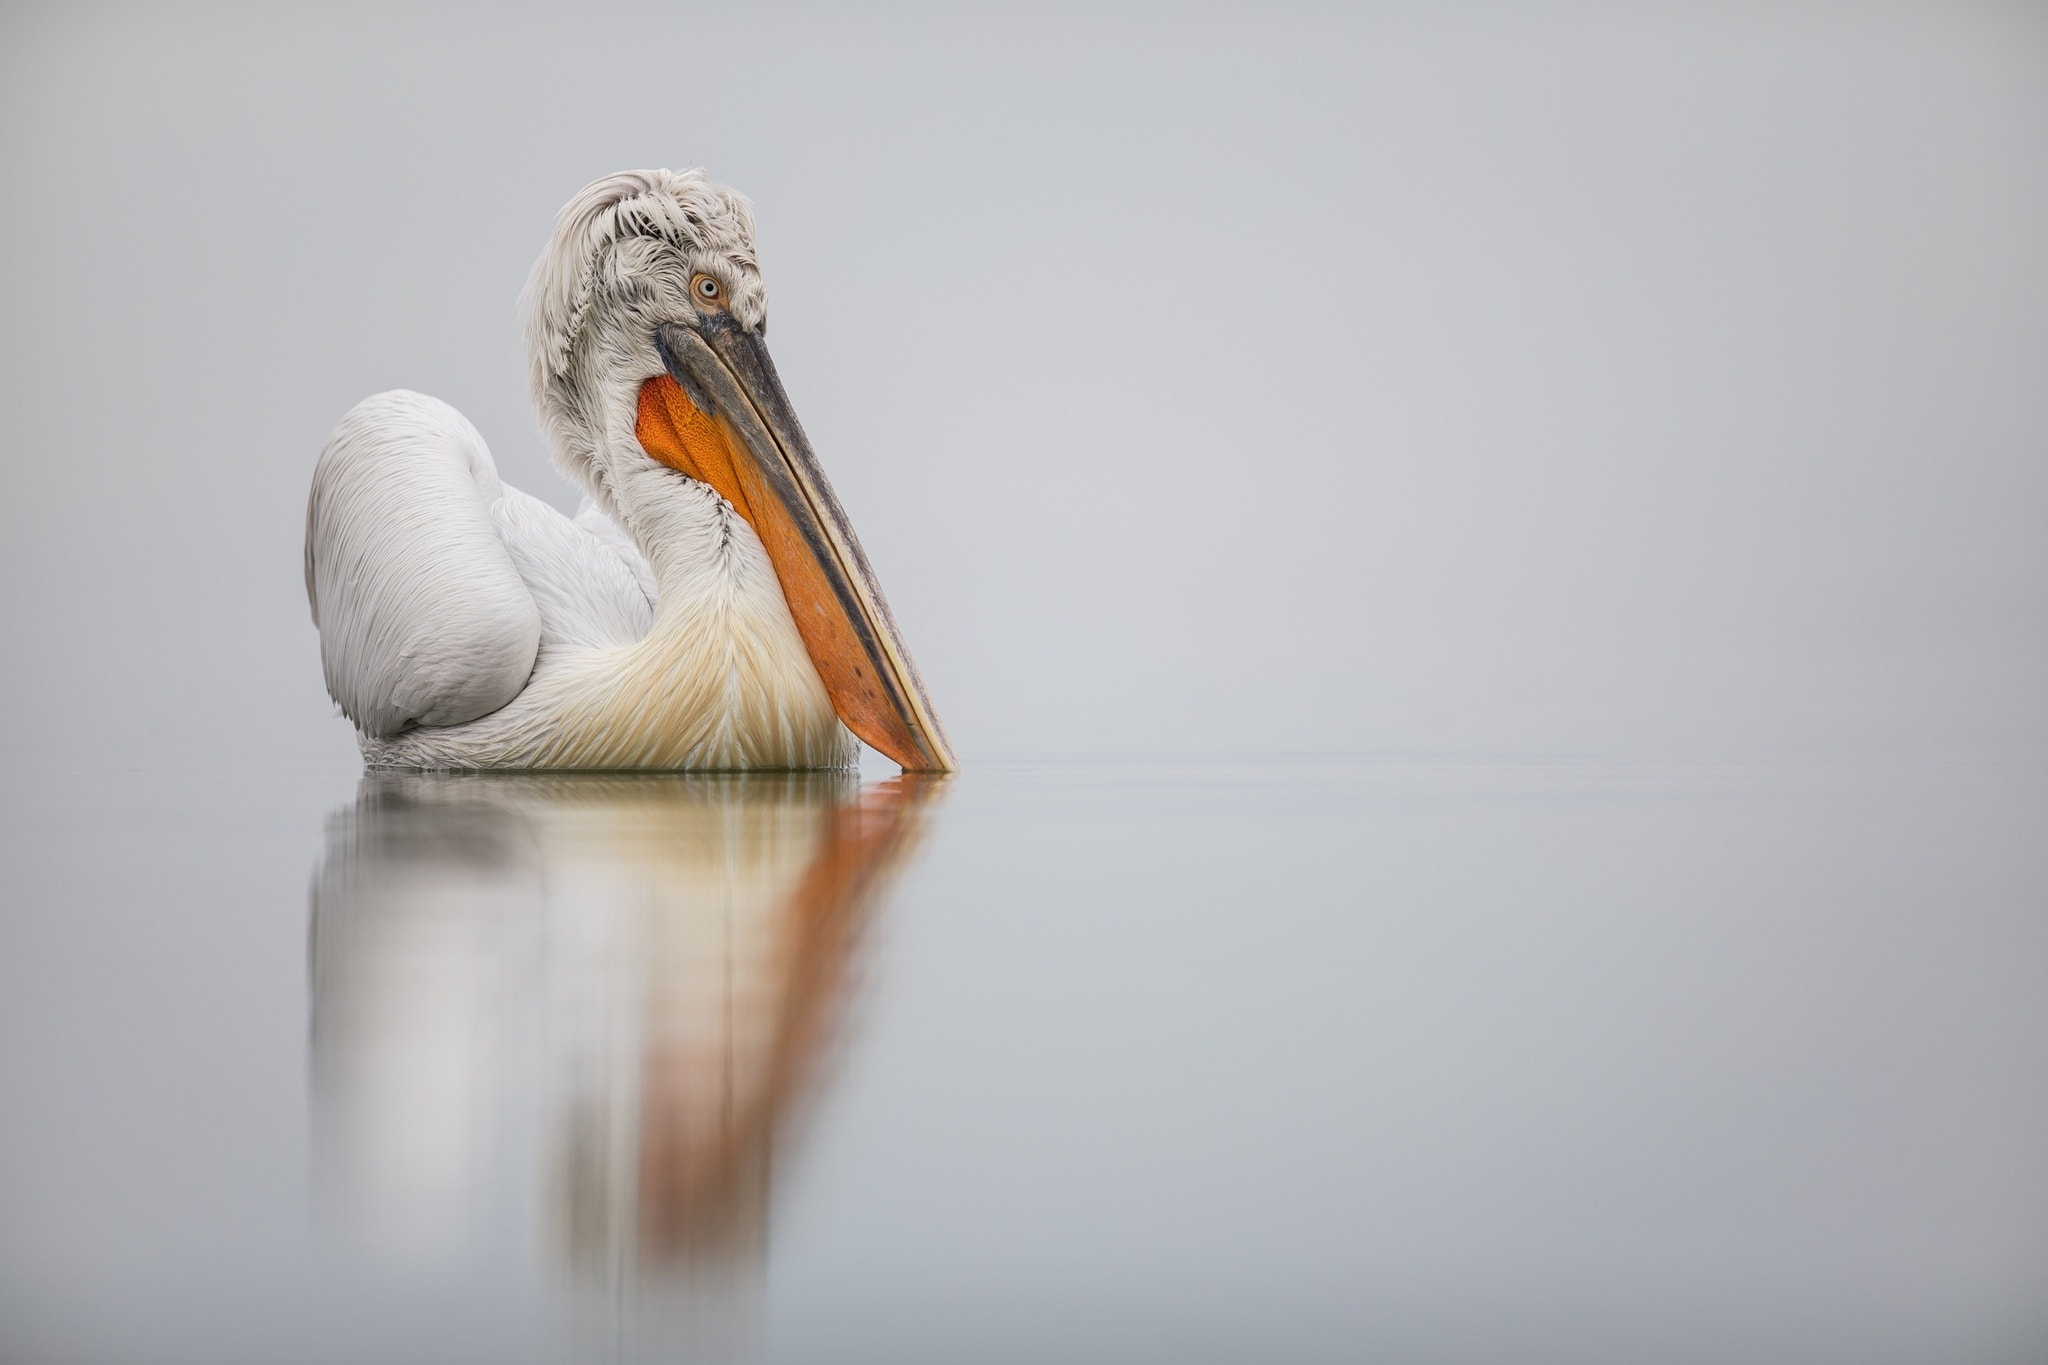 A Dalmatian Pelican Reflected In The Waters Of Lake Kerkini   Photographed During The NaturesLens Dalmatian Pelicans Of Greece Photography Holiday